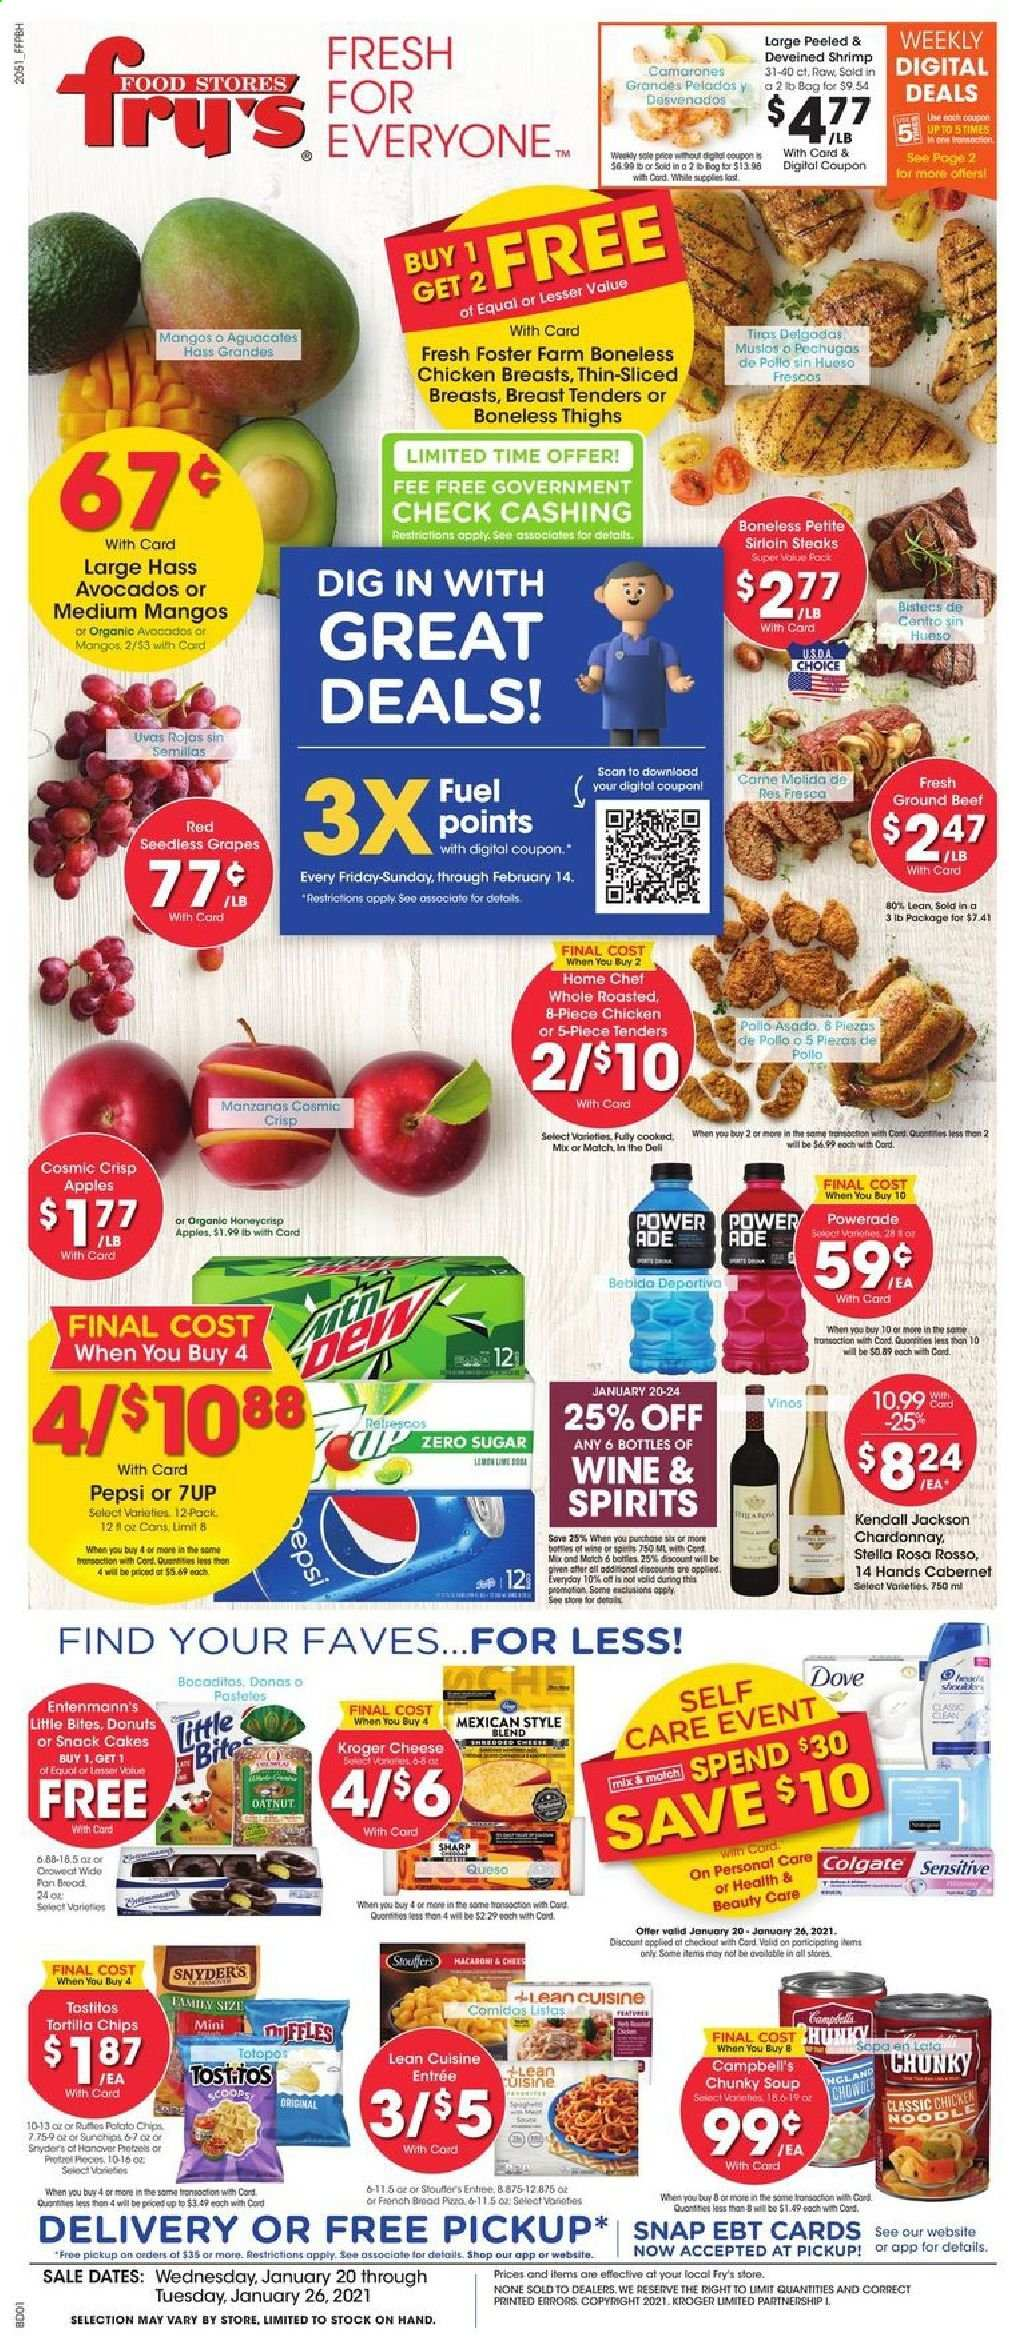 Fry's Flyer - 01.20.2021 - 01.26.2021 - Sales products - apples, avocado, grapes, mango, seedless grapes, cake, donut, cod, shrimps, Campbell's, pizza, soup, cheese, tortilla chips, chips, snack, sugar, Powerade, Pepsi, Chardonnay, wine, chicken, chicken breast, beef meat, ground beef, Dove, Colgate, pan, Sharp. Page 1.